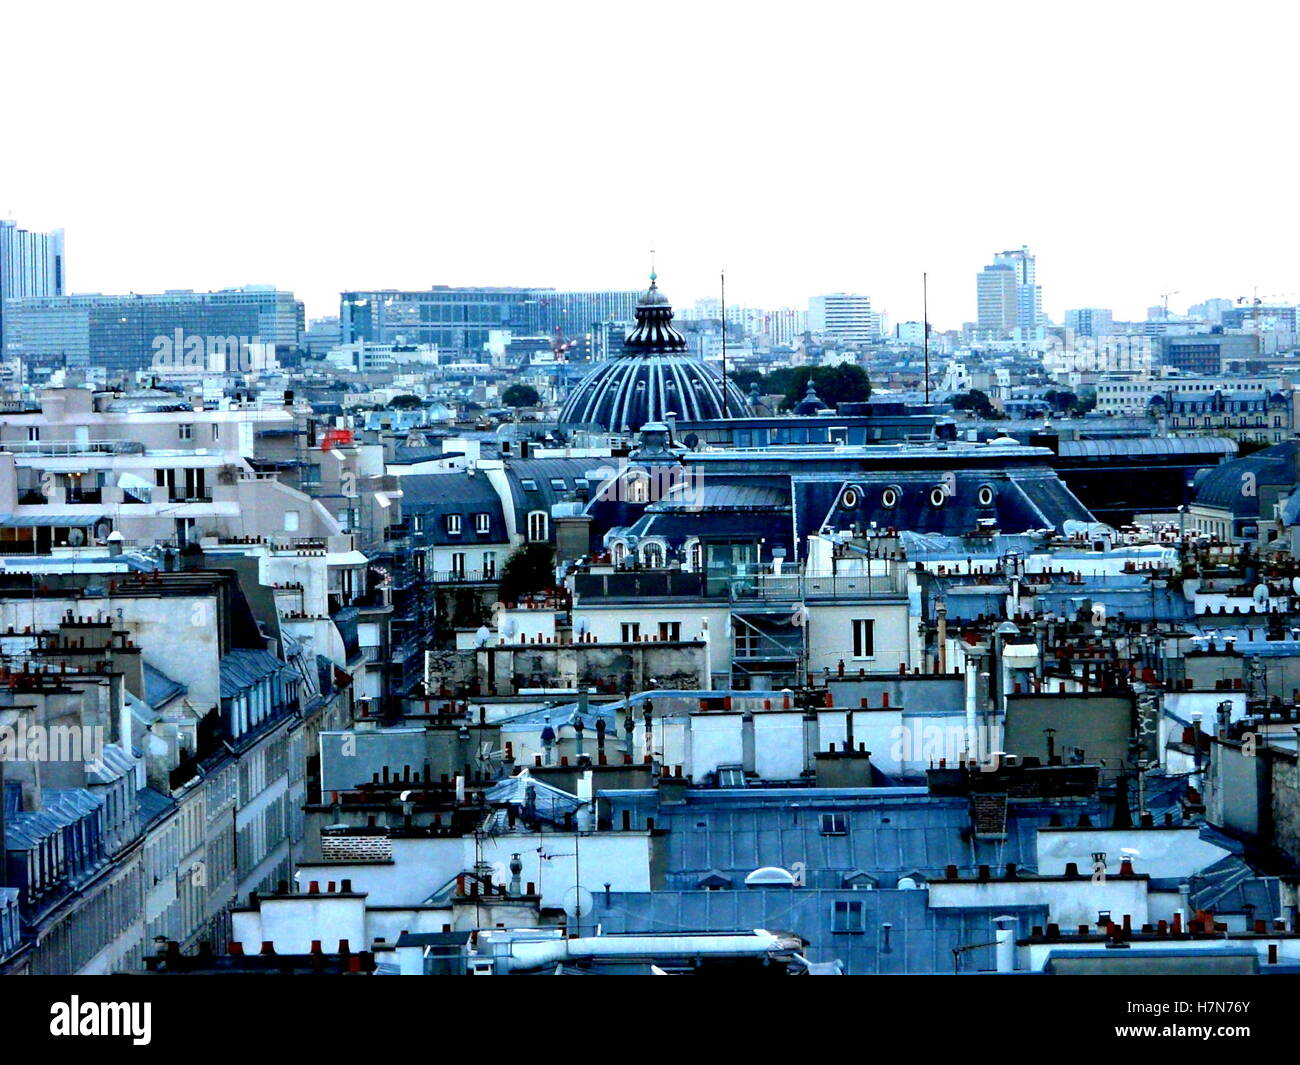 Paris cityscape with blue roofs and Grand Palais. White sky and blue buildings. - Stock Image